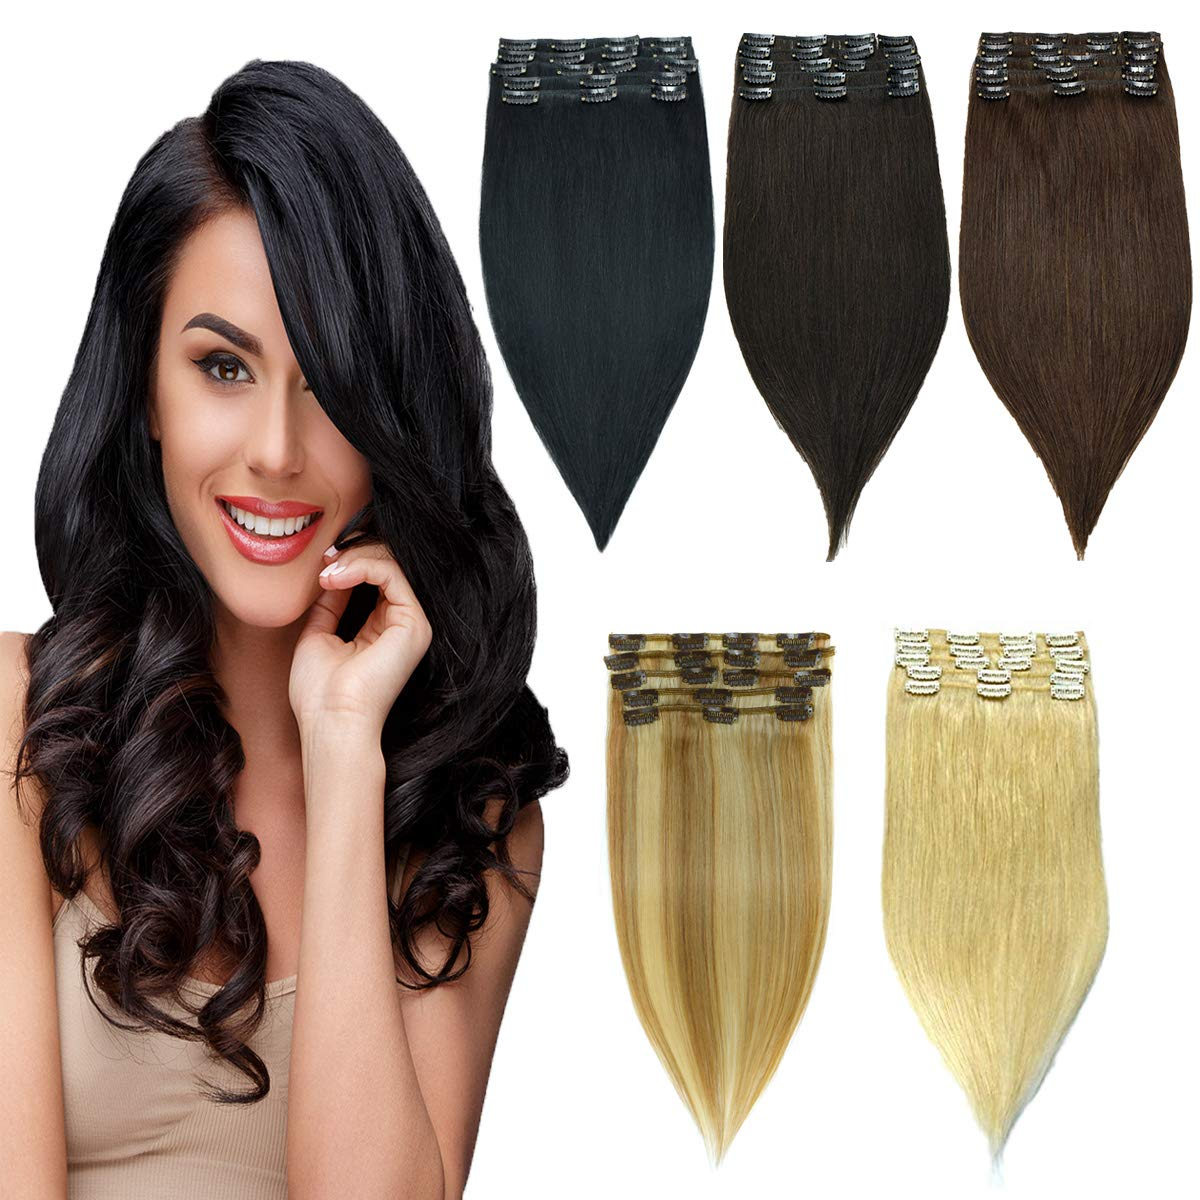 HAIRREAL Clip in Hair Extensions REMY Human Hair for Women 8pcs Set Full Head Natural Straight Real Hairpiece 14-22 Inch by HAIRREAL